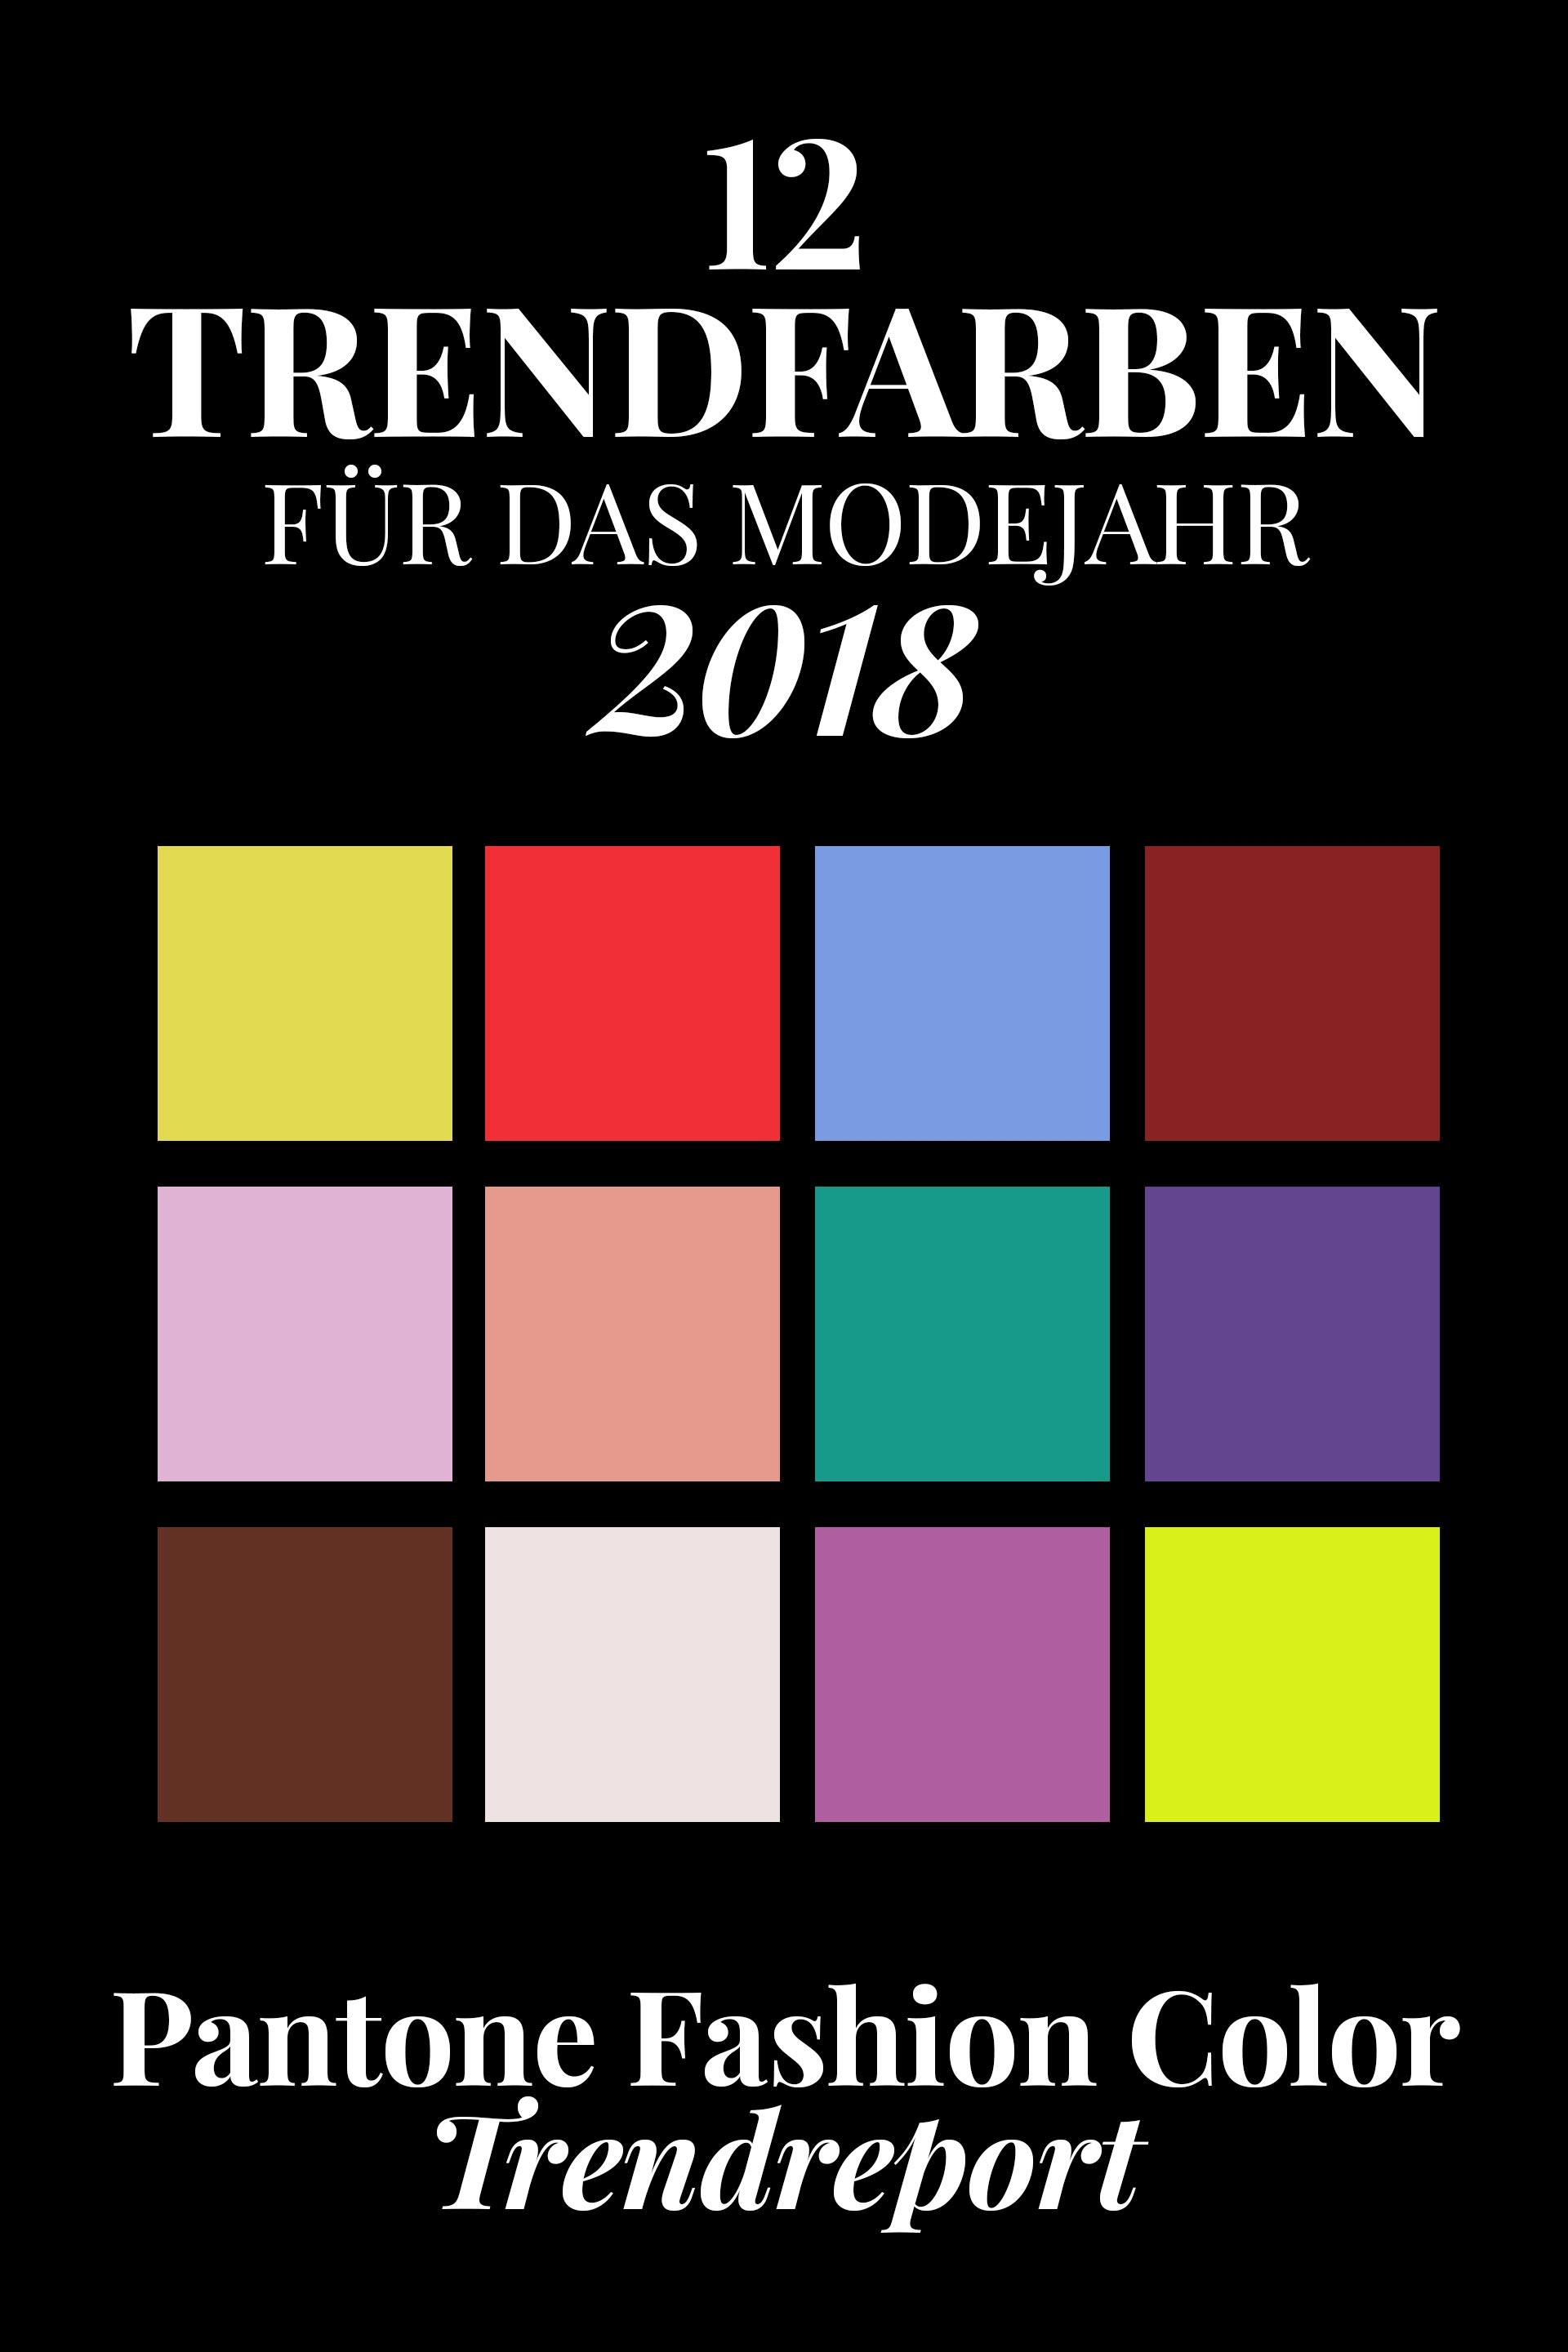 Pantone Fashion Color Trend Report NY Fashion Week Spring Summer 2018, 12 Trendfarben für das Modejahr 2018, Shop the Trend, Shopping Tipps, Modetrends Frühjahr Sommer 2018, Fashion Blog, Modeblog, www.whoismocca.com